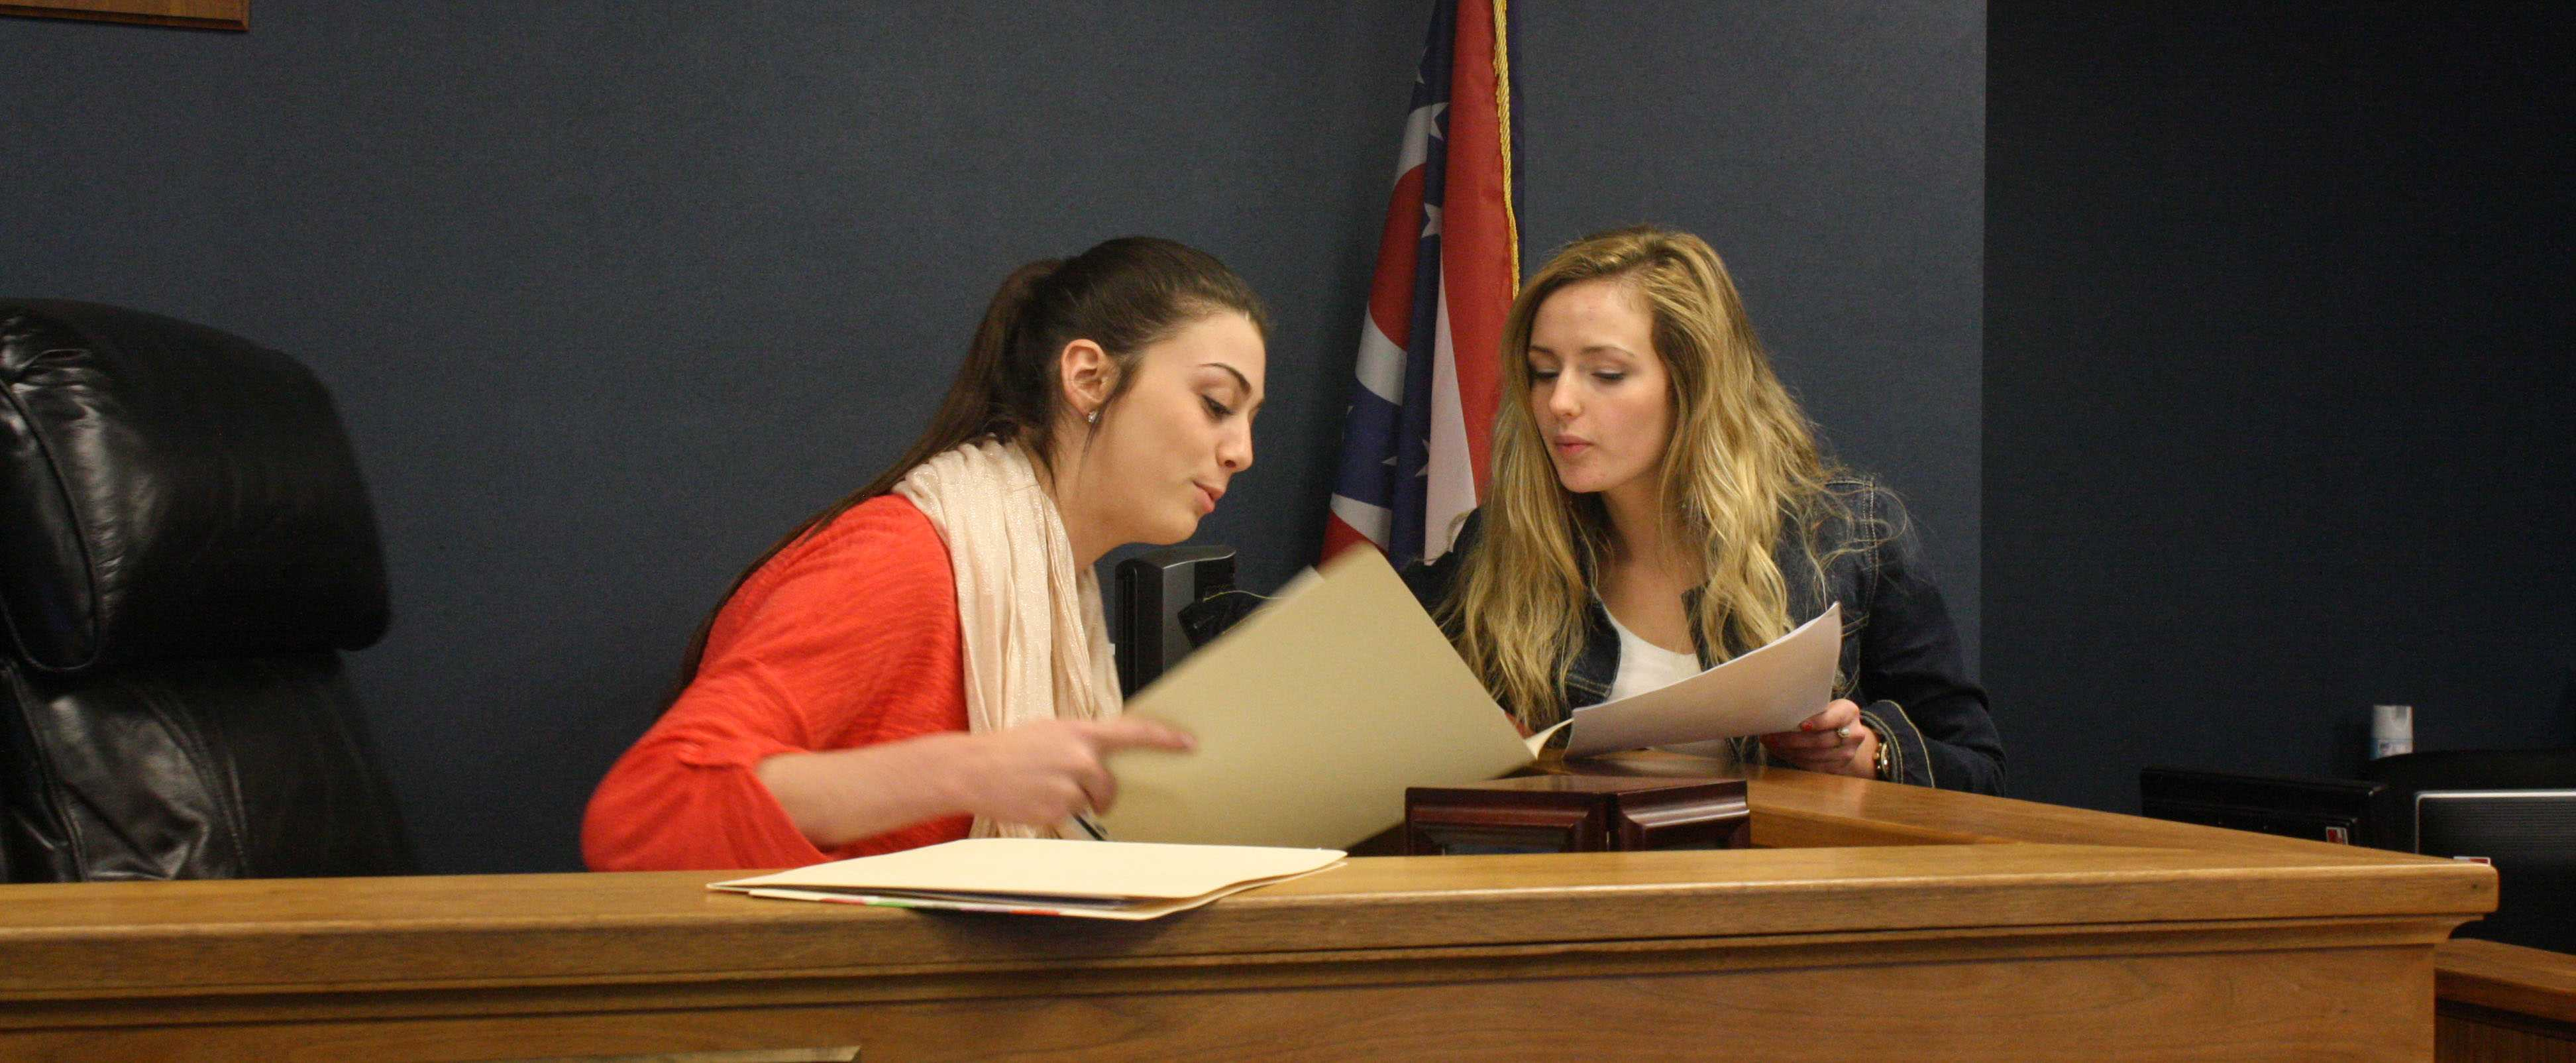 teen court Teen courts function as actual courts for young people who commit non-serious crimes, in which they are questioned, judged and sentenced by a jury of their peers.